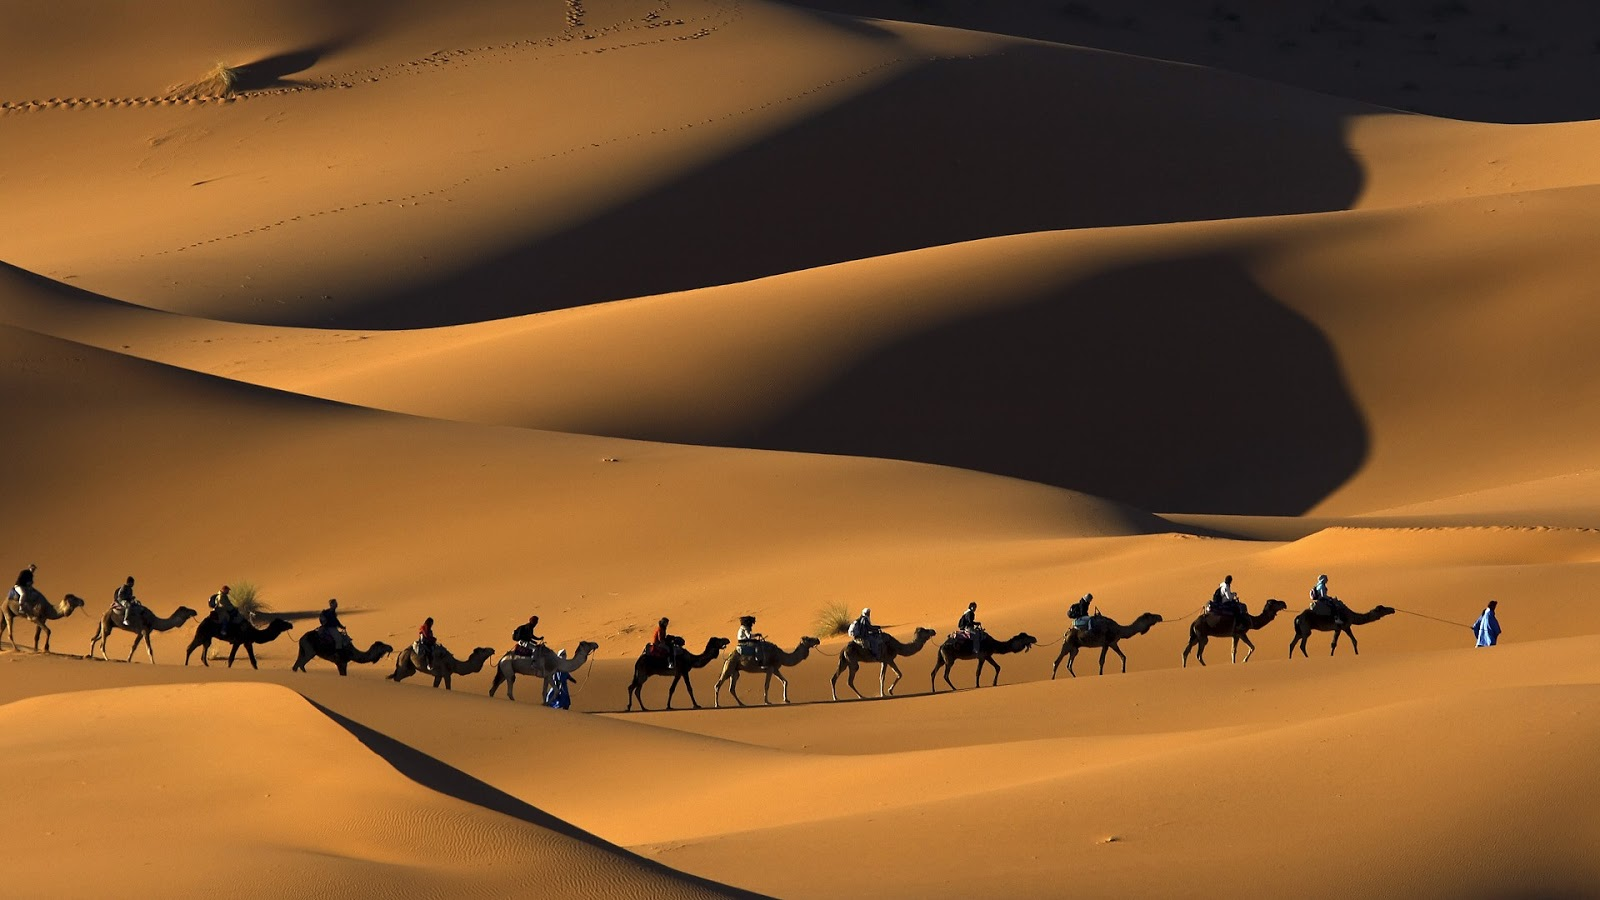 Morocco travel wallpaper images